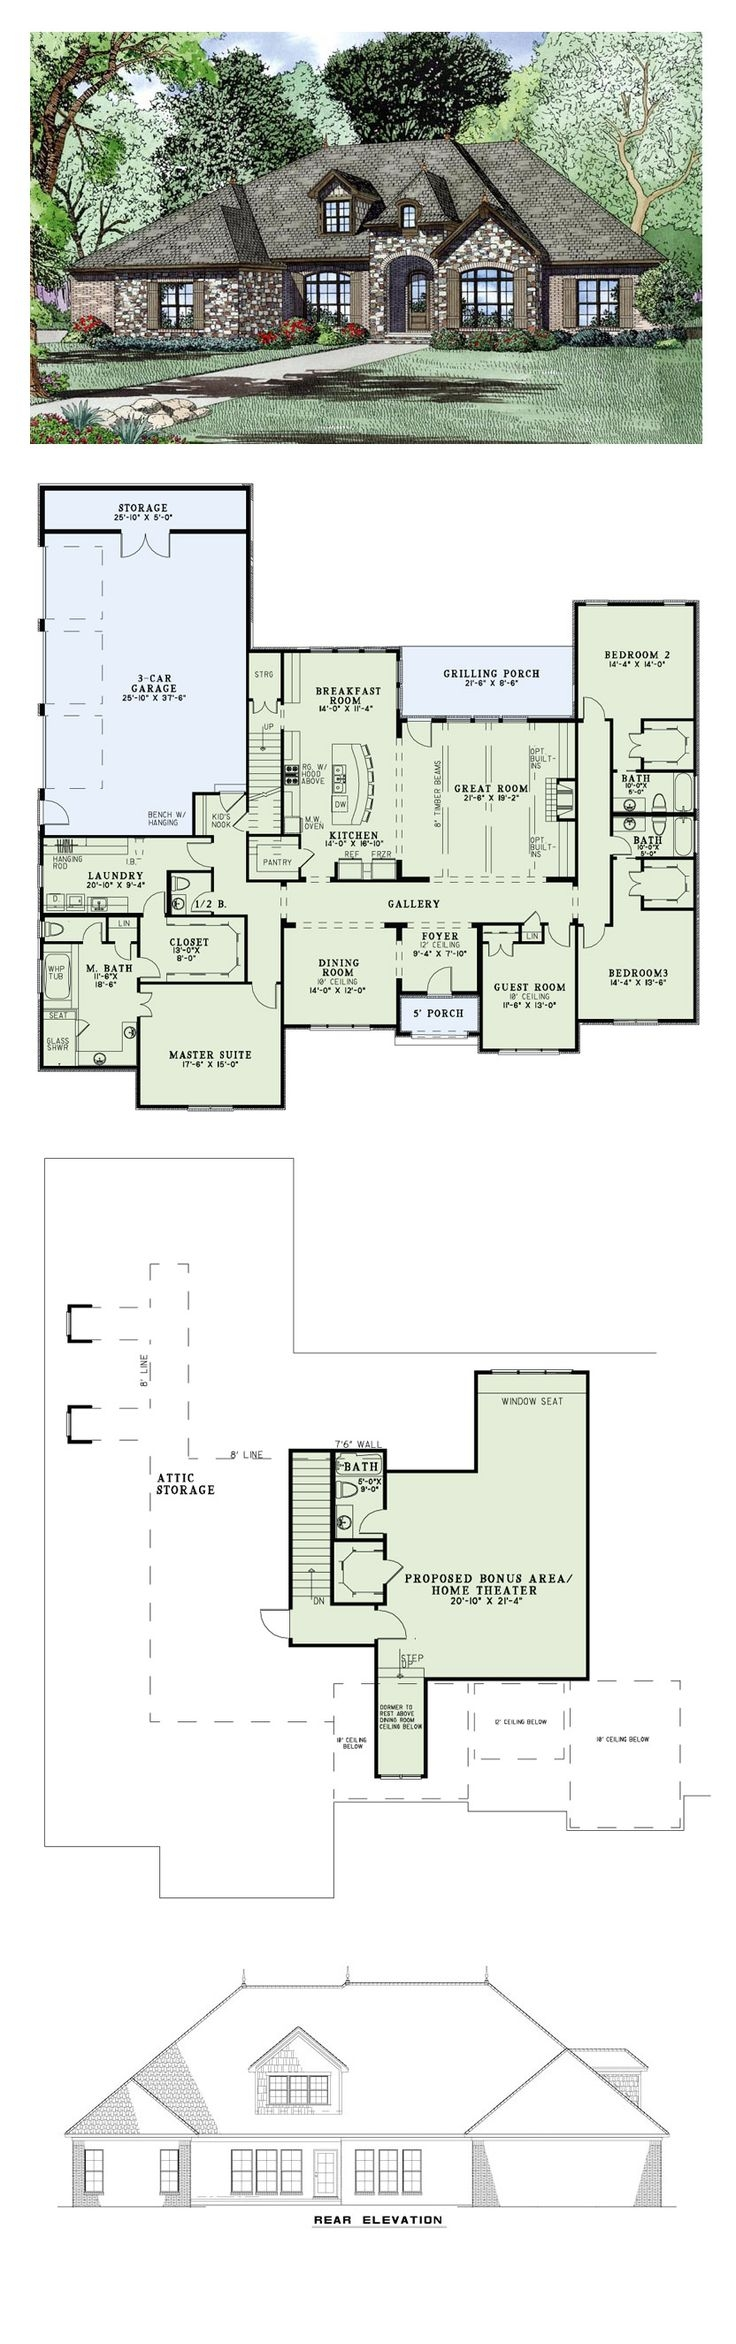 Rustic Mountain House Plans with Walkout Basement Elegant 80 Best House Plans Images On Pinterest